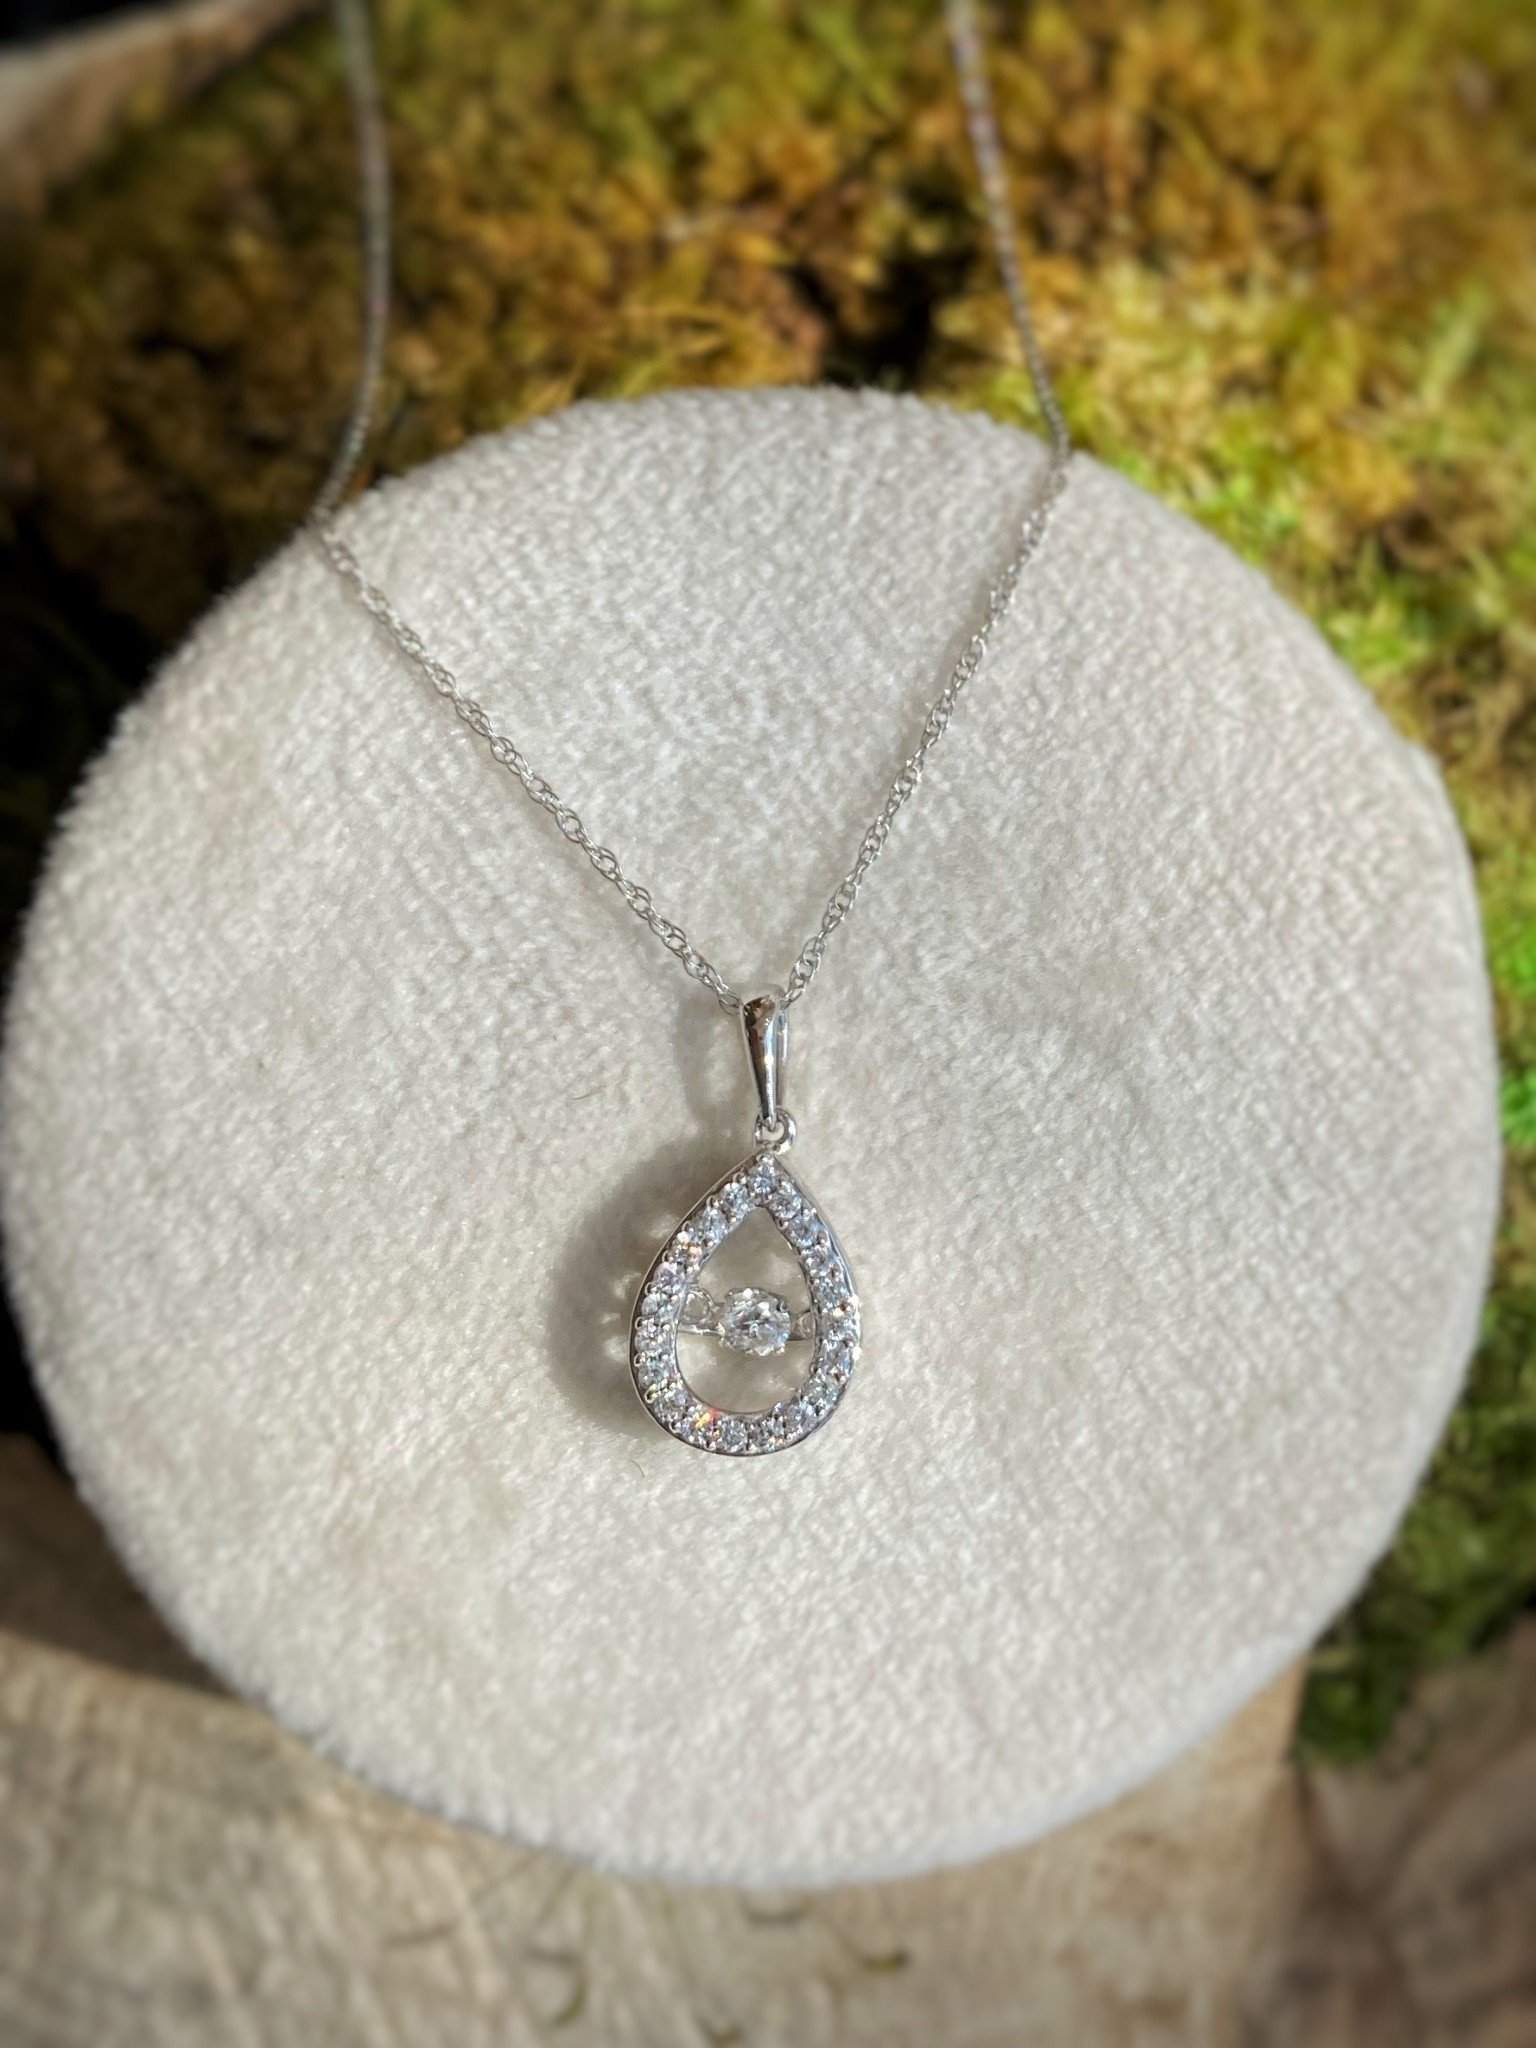 Pear Shaped Dancing Diamond Necklace